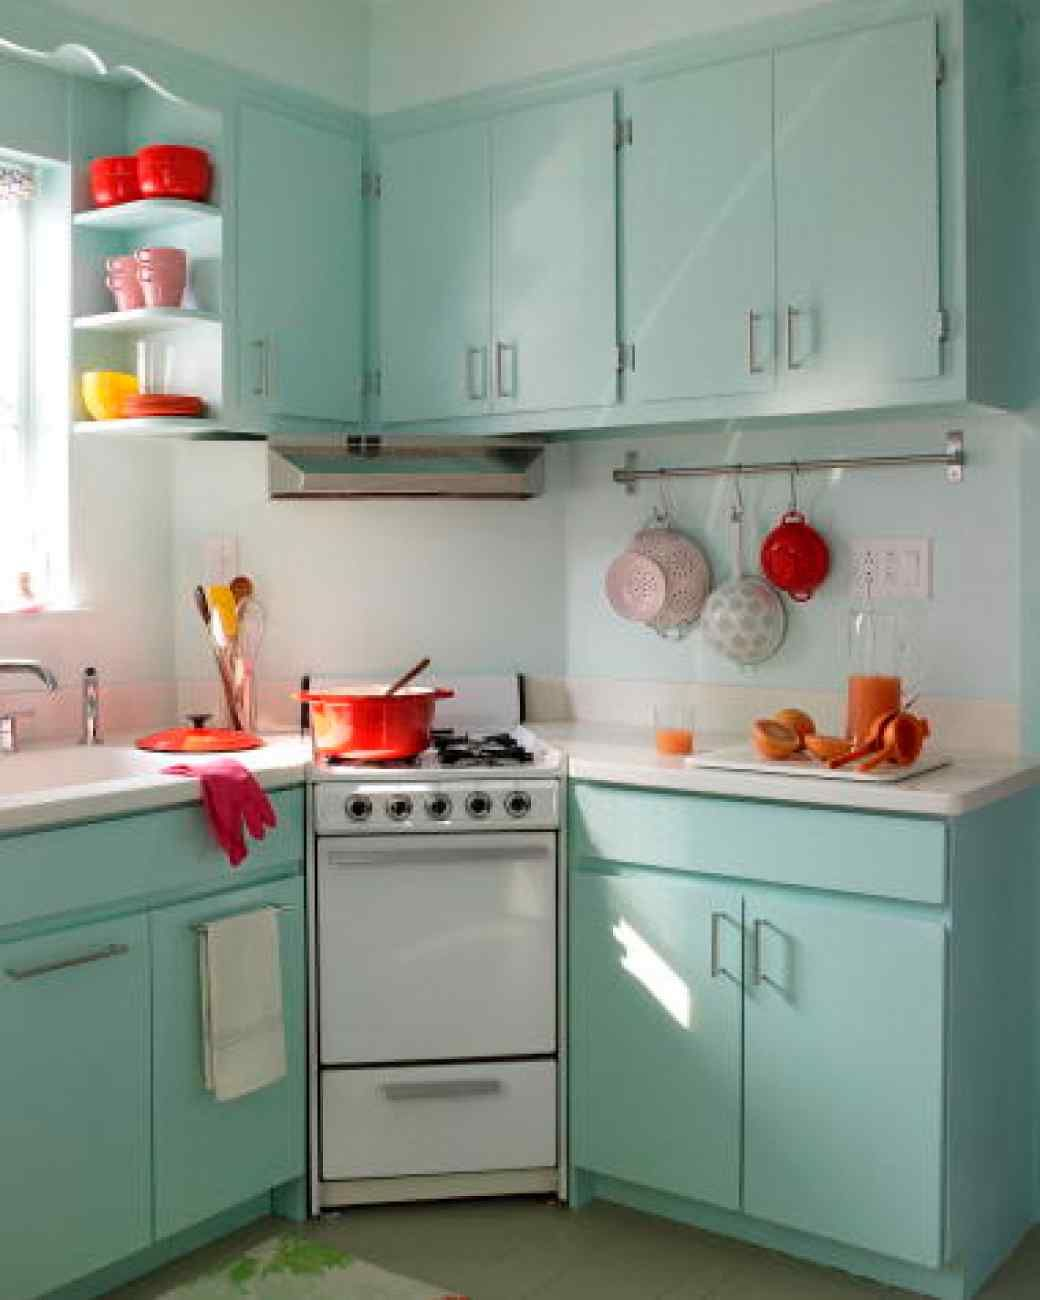 A Kitchen Makeover on a Budget | Hall, Kitchens and Modern